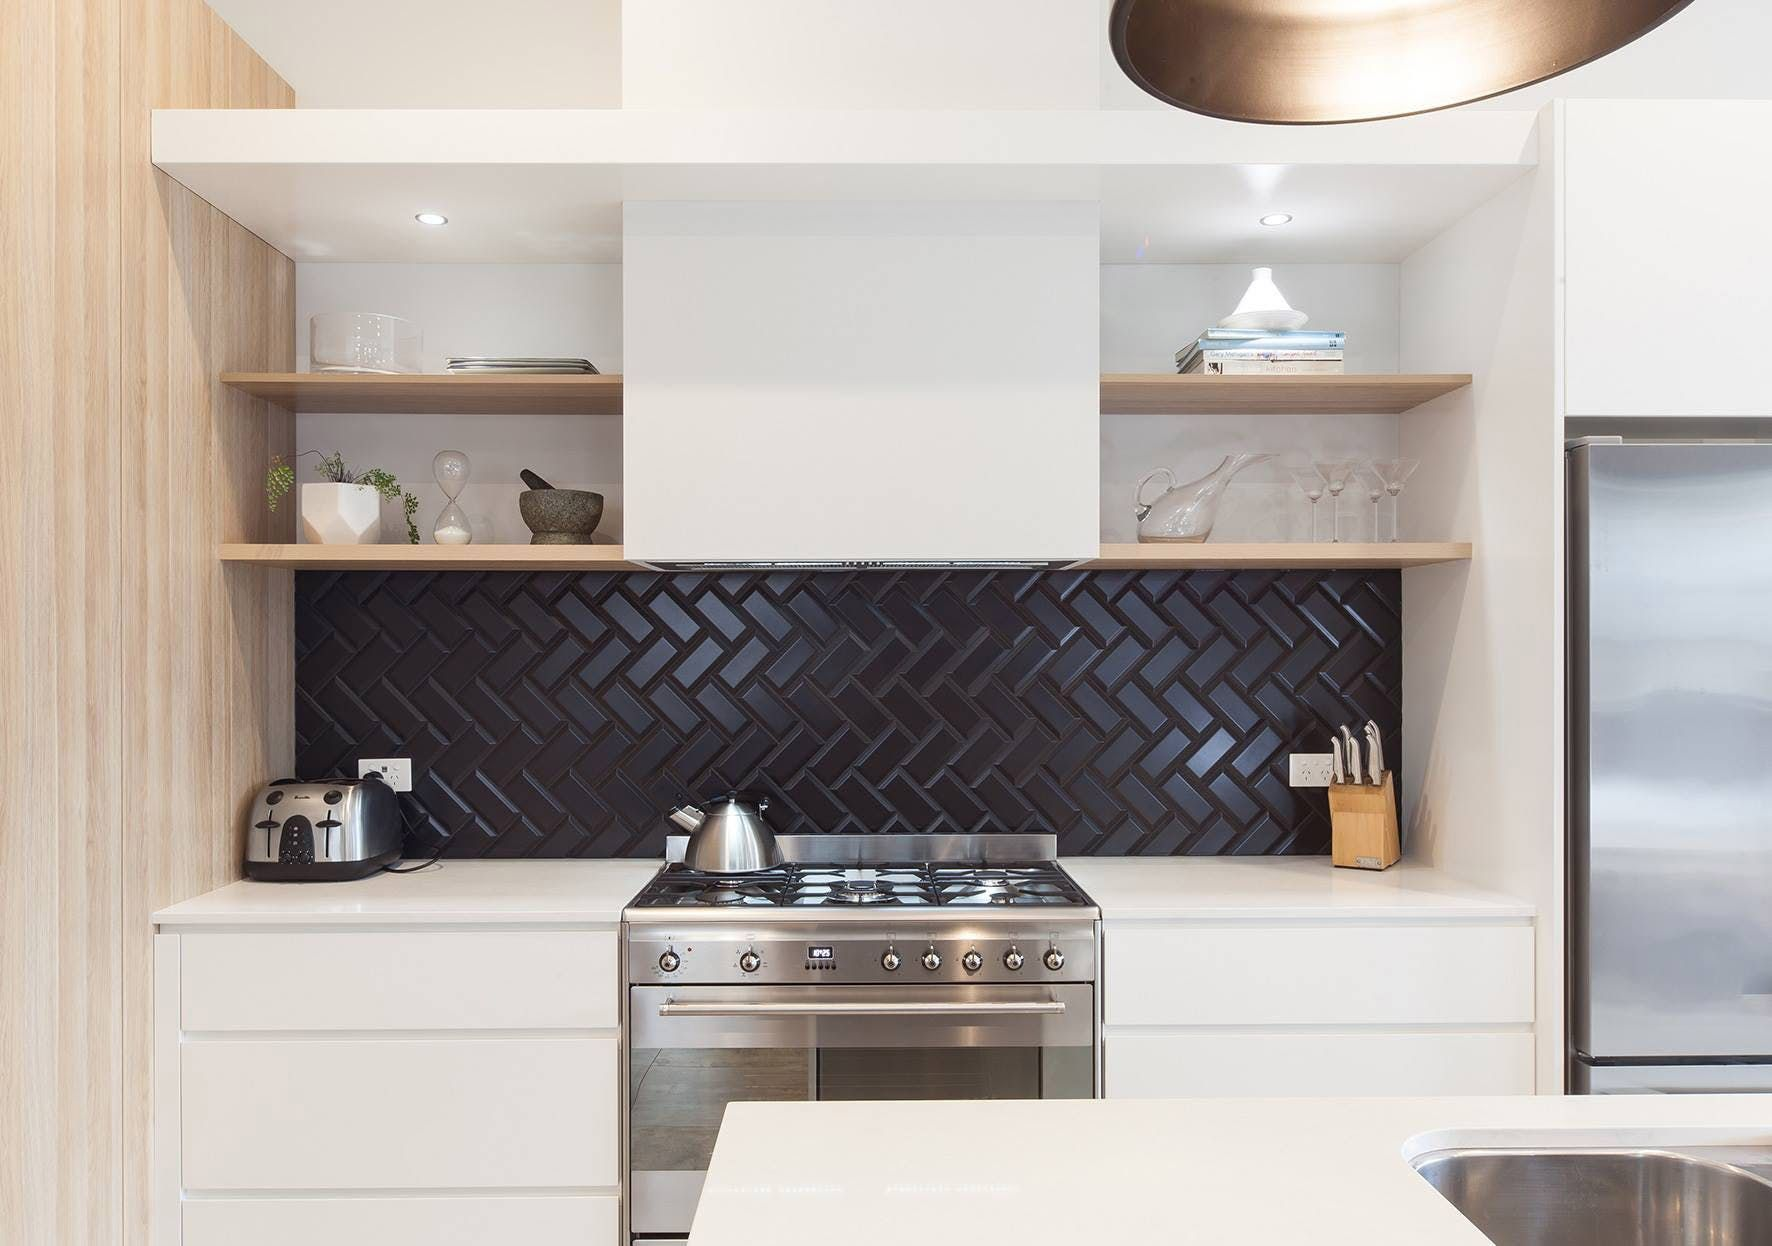 10 Black Kitchen Backsplash Ideas 2020 Break The Custom Black